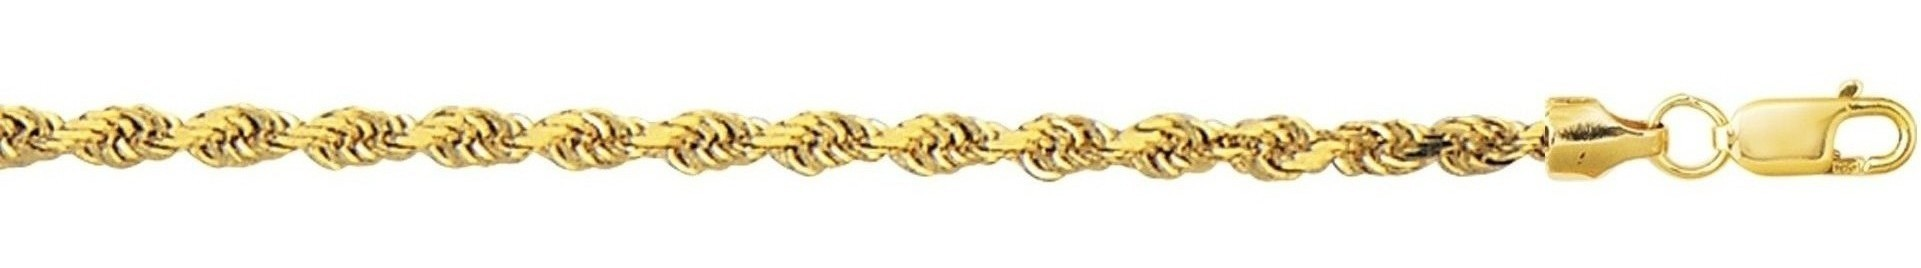 "24"" 10K Yellow Gold 3.20mm (1/8"") Polished Diamond Cut Hollow Sparkle Rope Chain w/ Lobster Clasp"